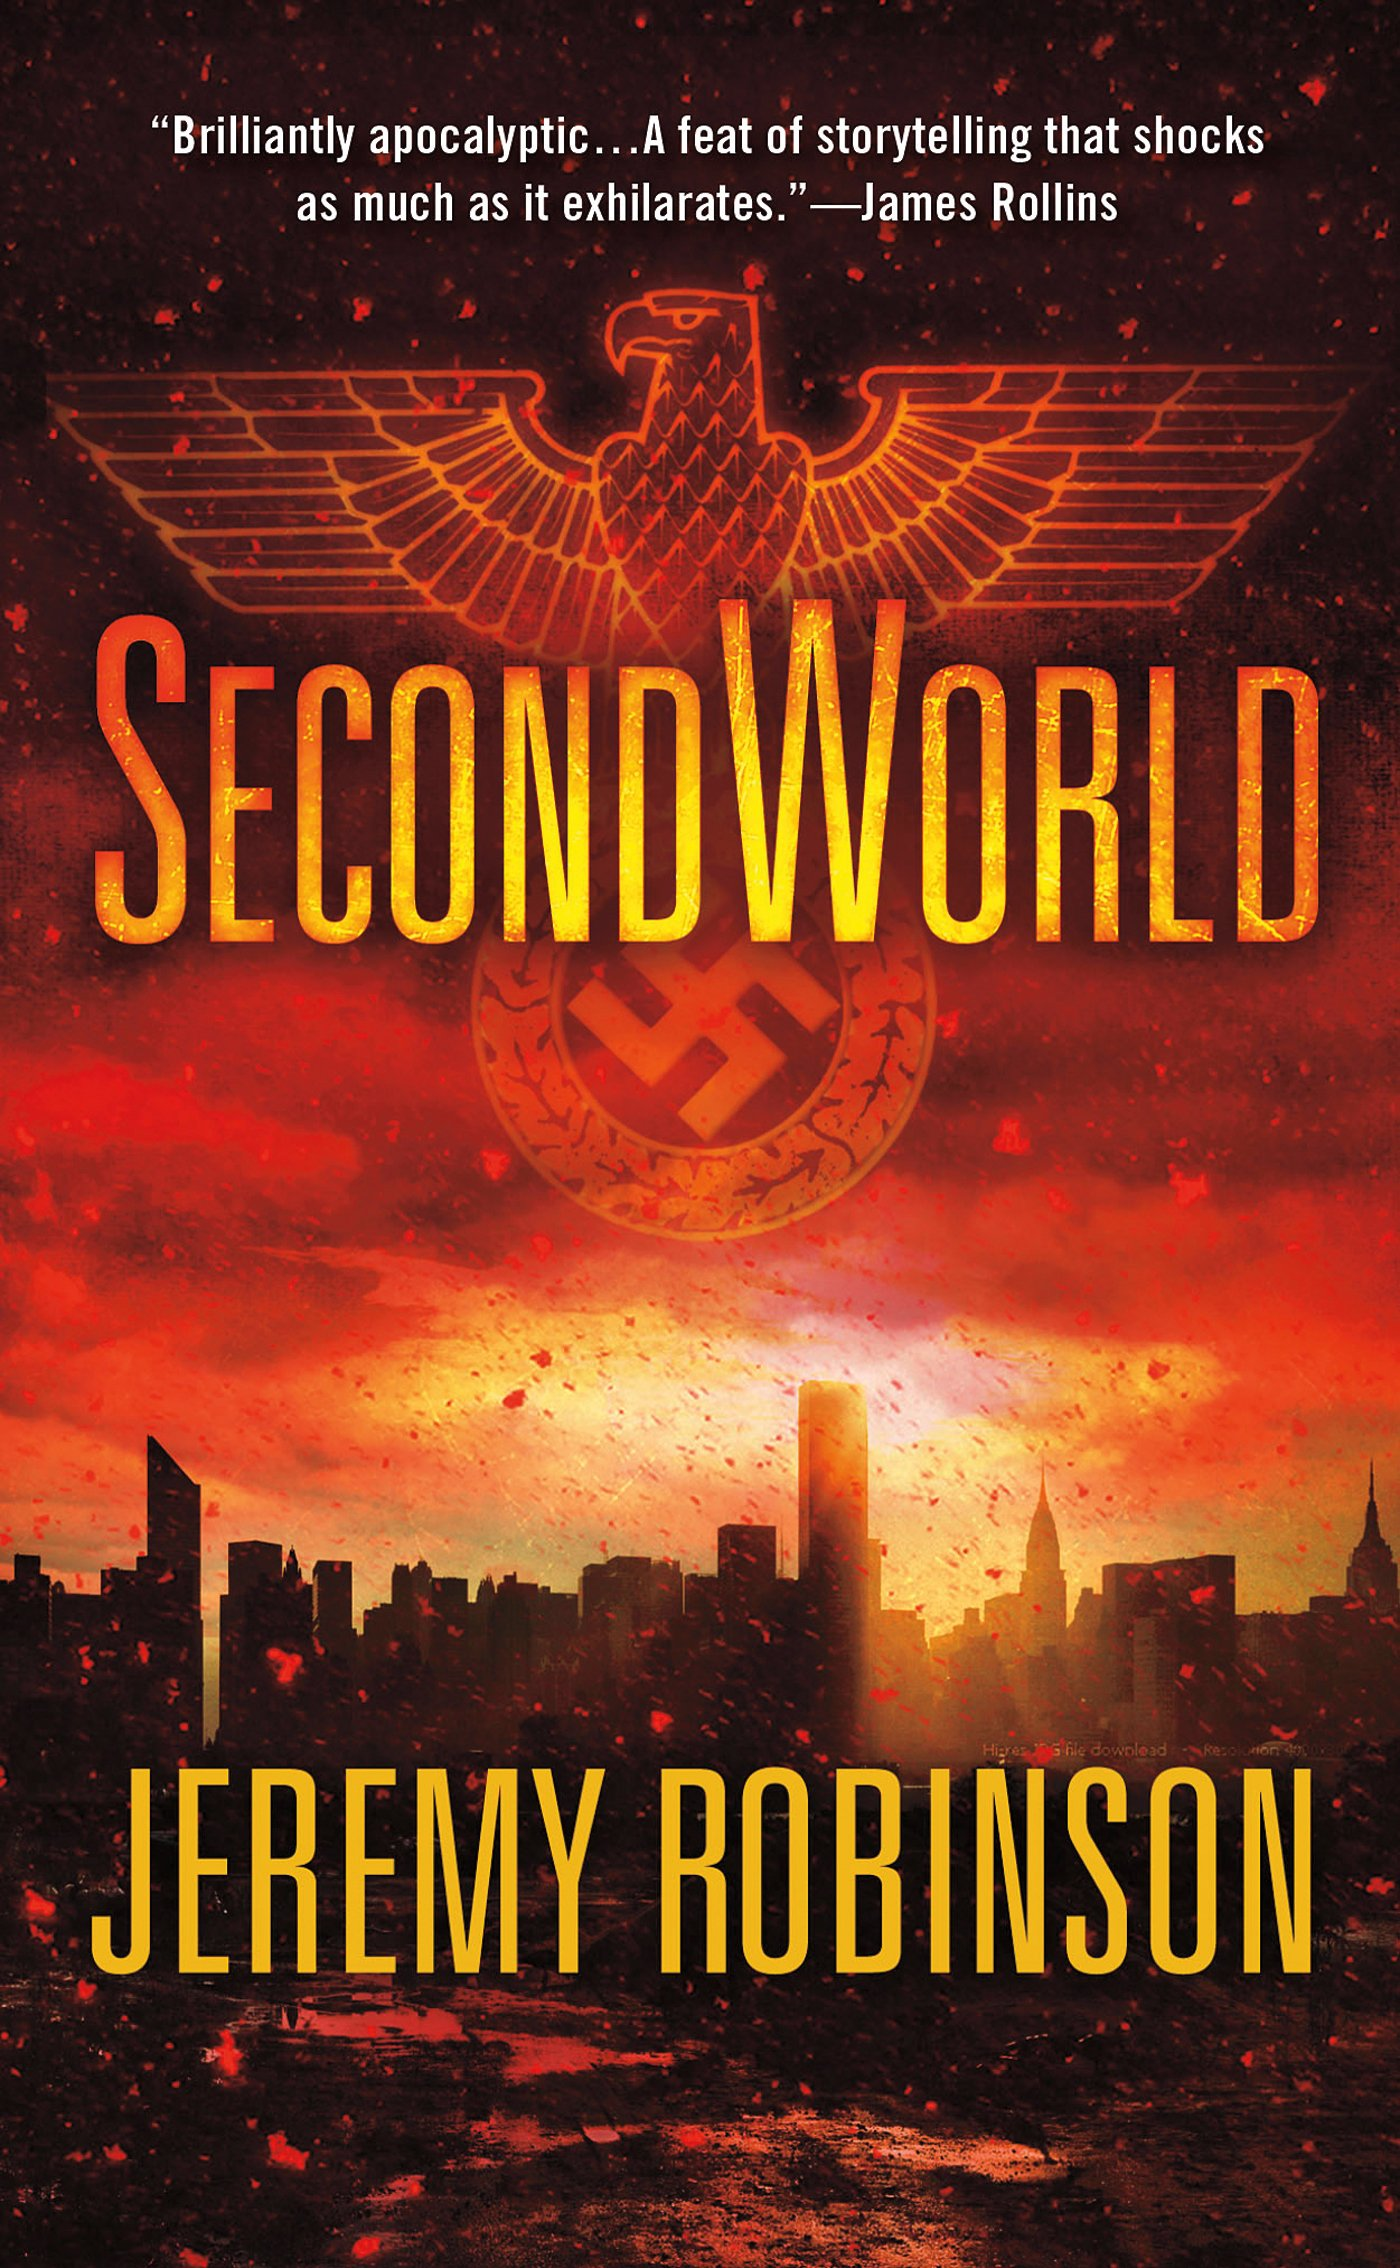 Jeremy Robinson SecondWorld